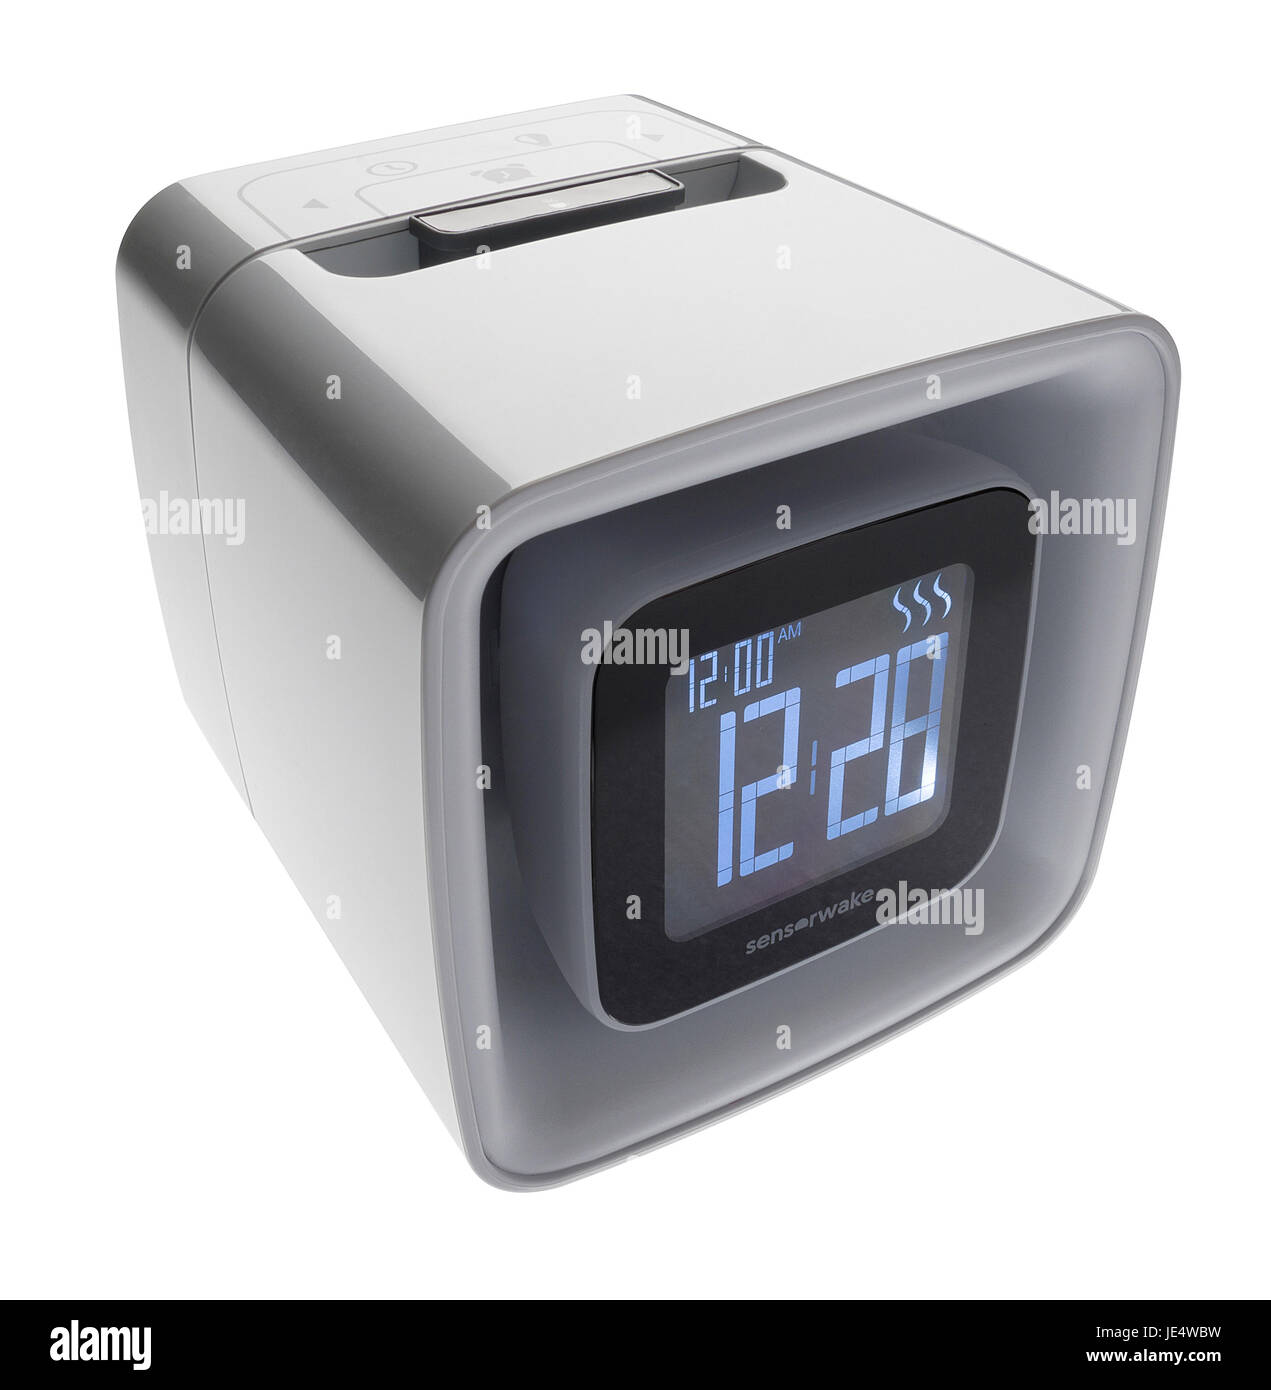 Olfactory alarm clock. Alarm accompanied by smell emitted. - Stock Image